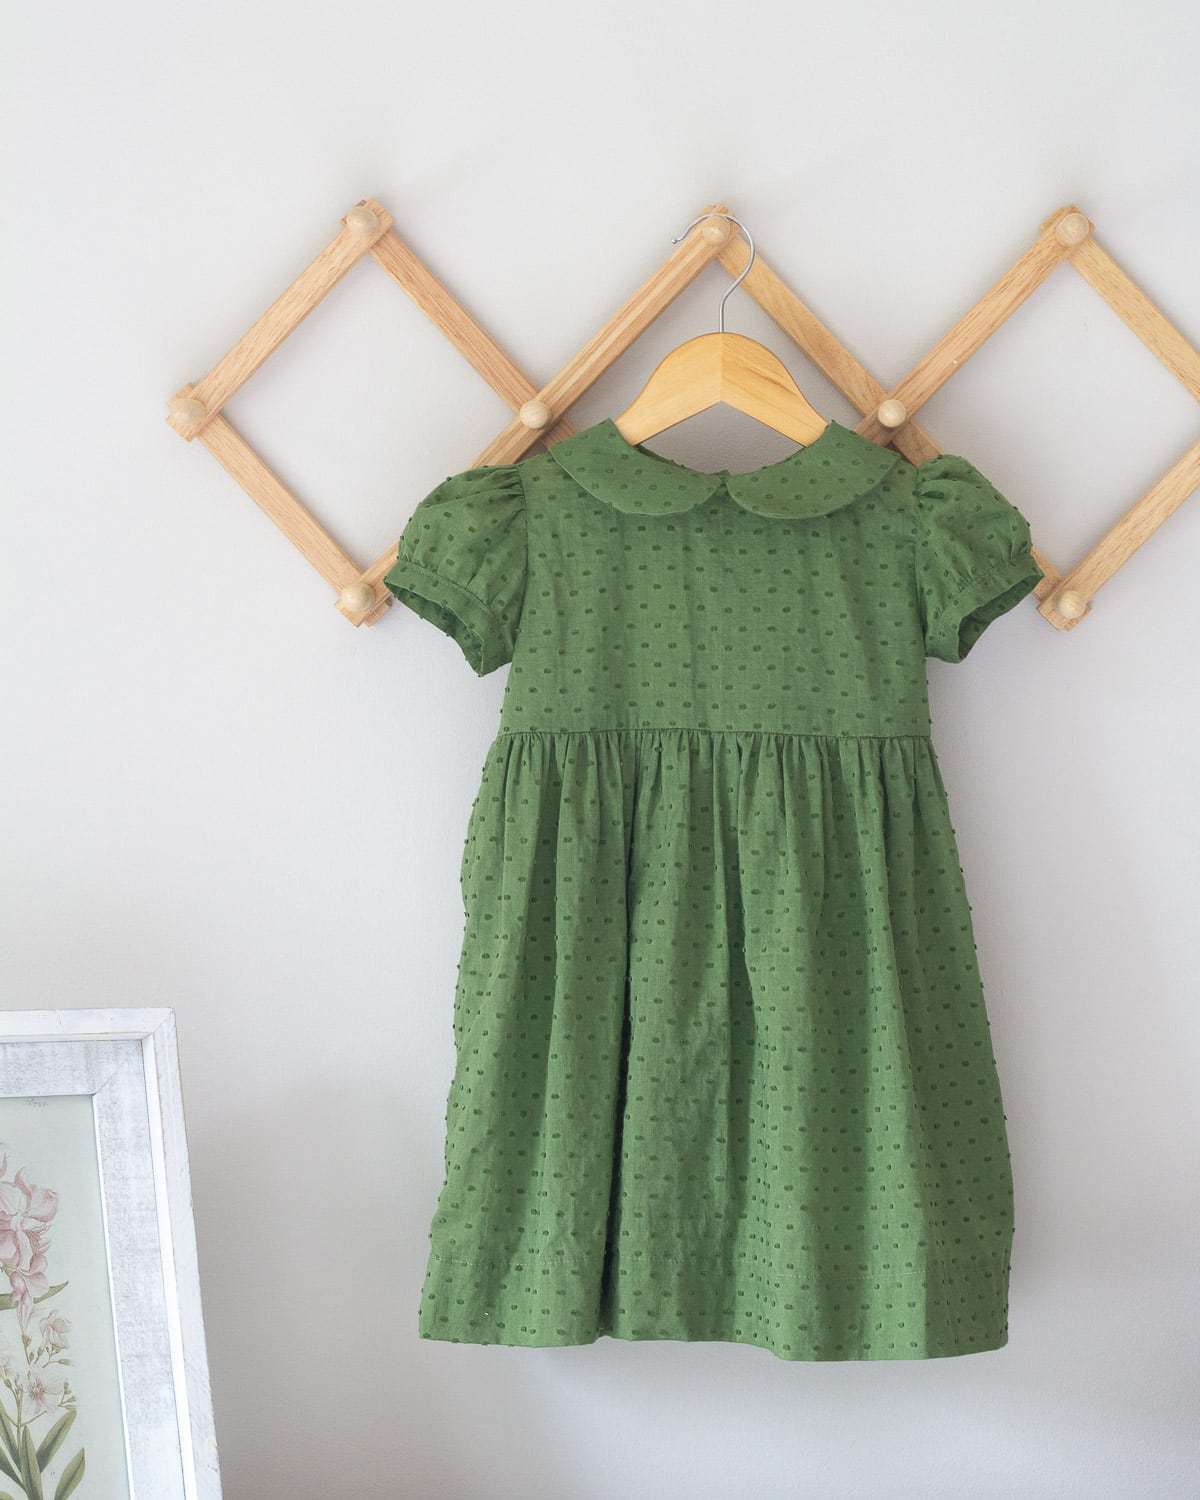 A green toddler dress with a peter pan collar hanging on a wooden hanger.